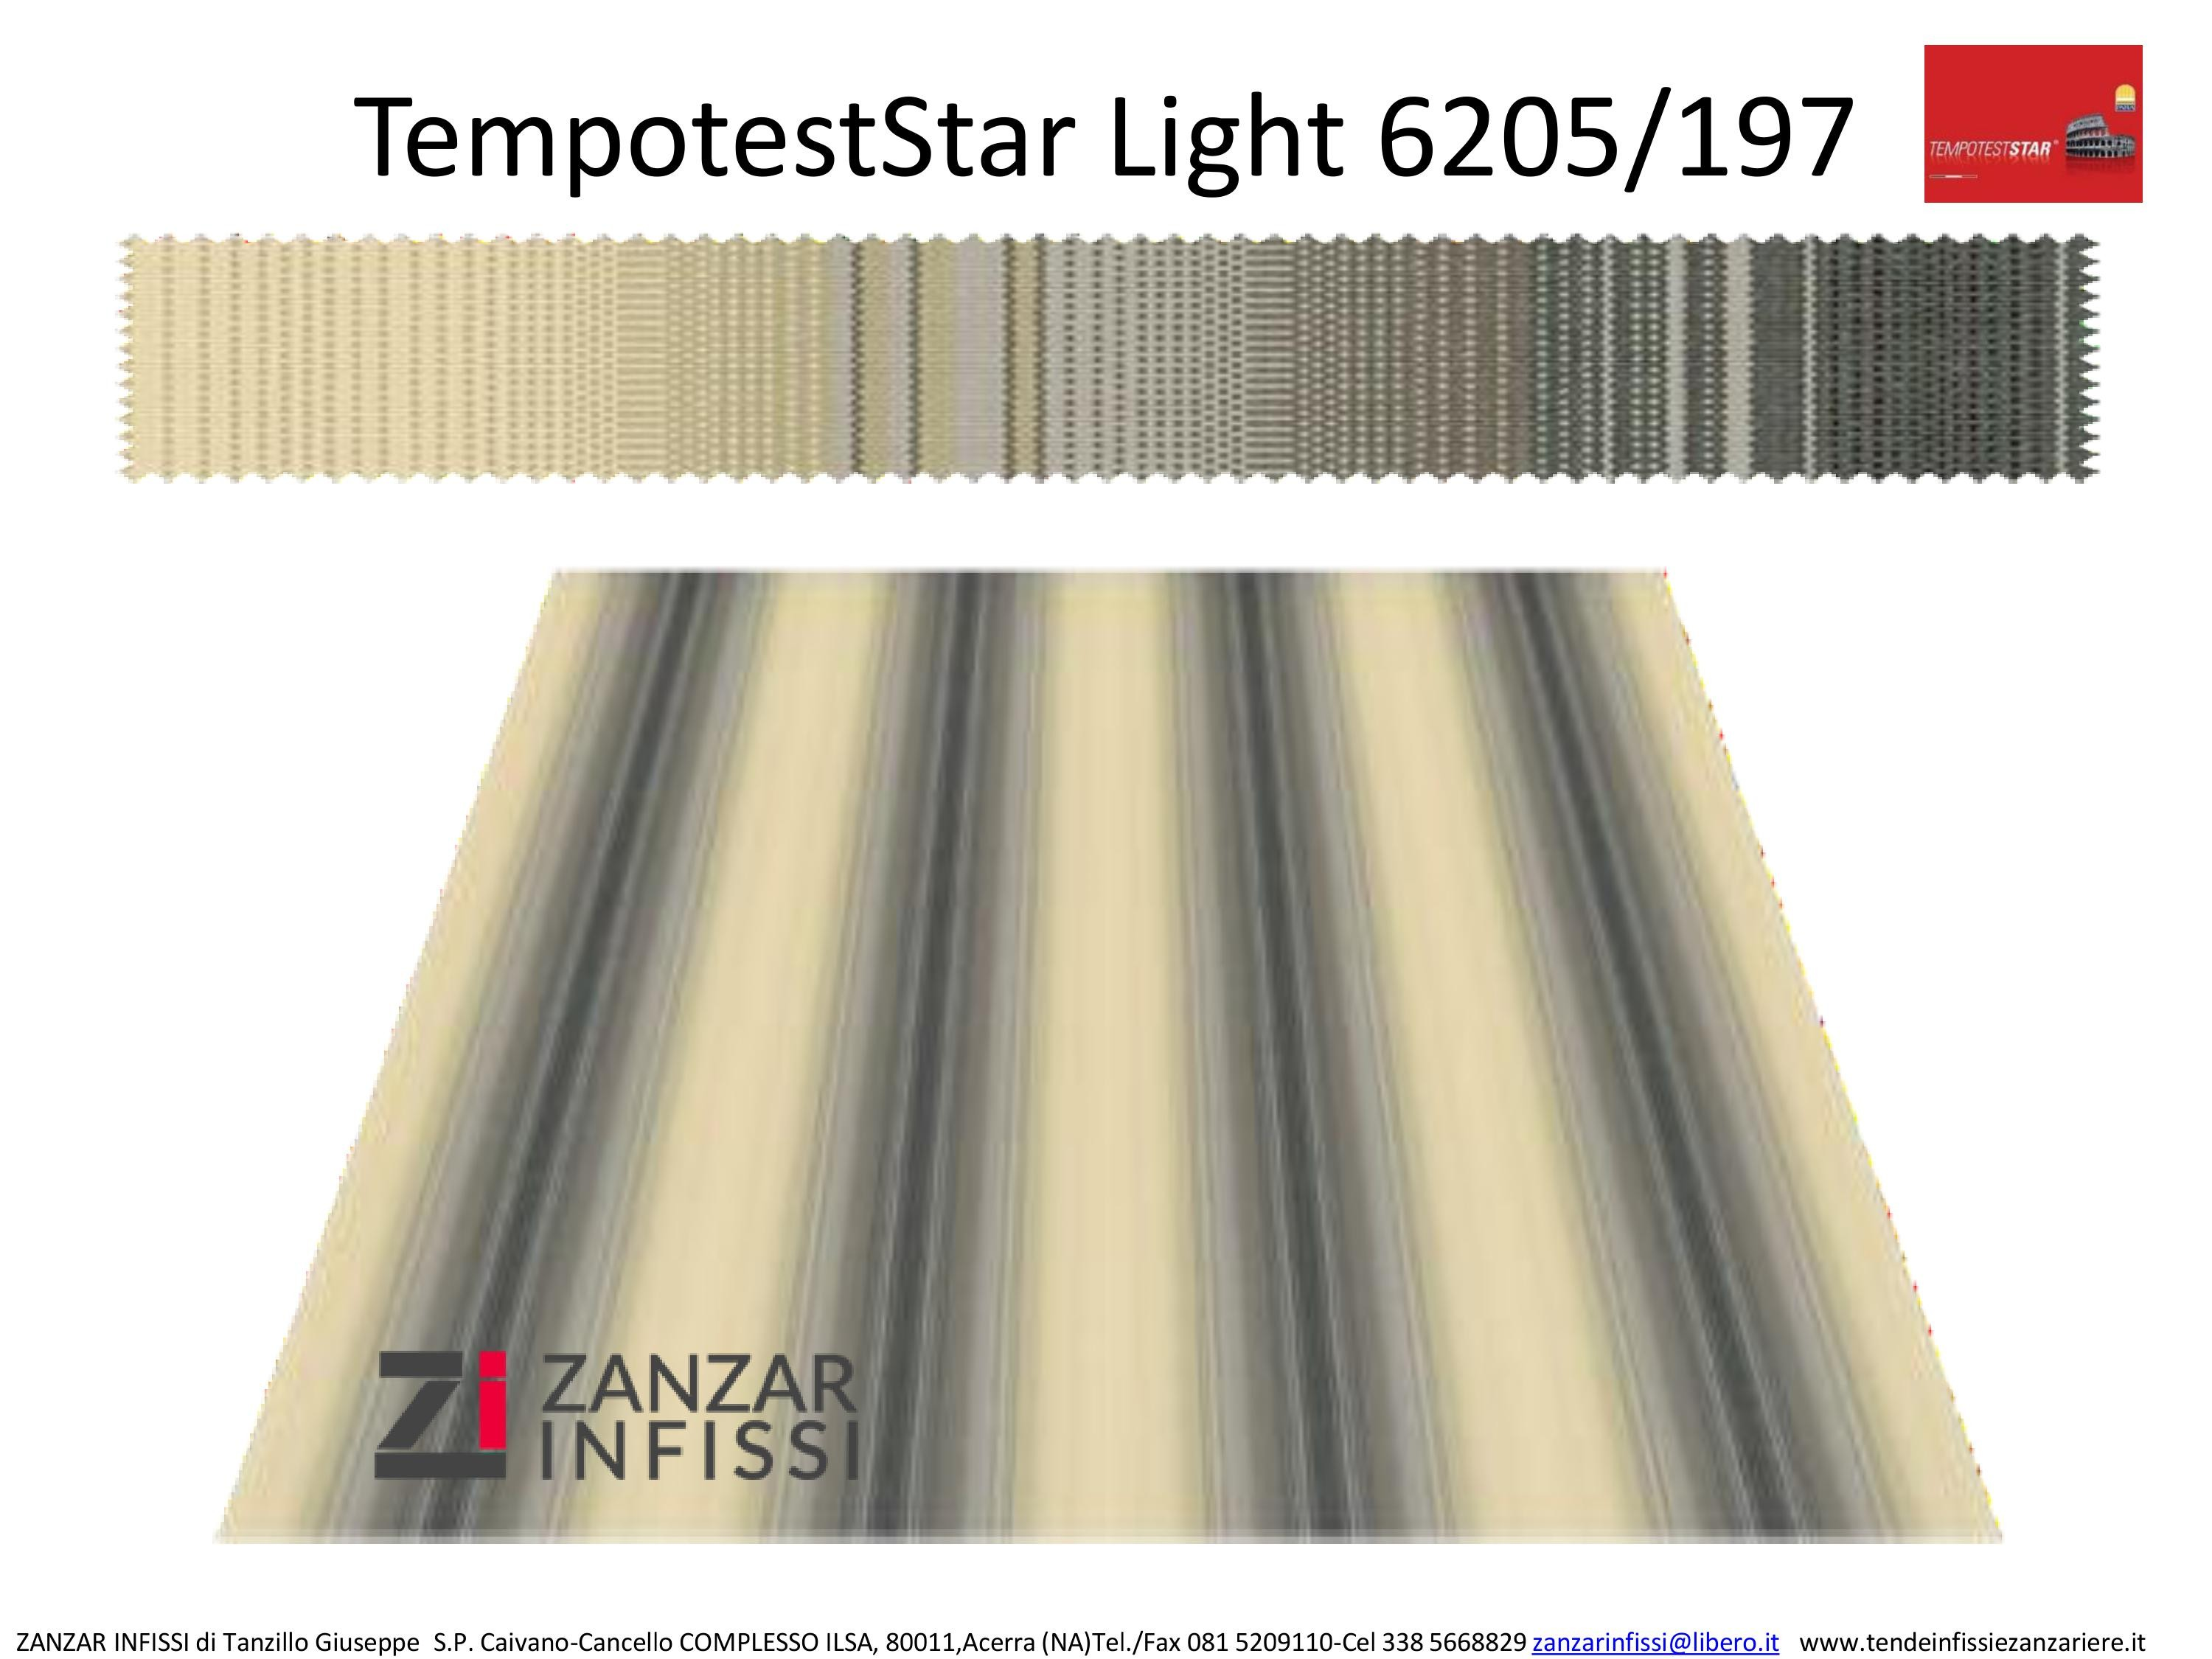 Tempotest star light 6205/197